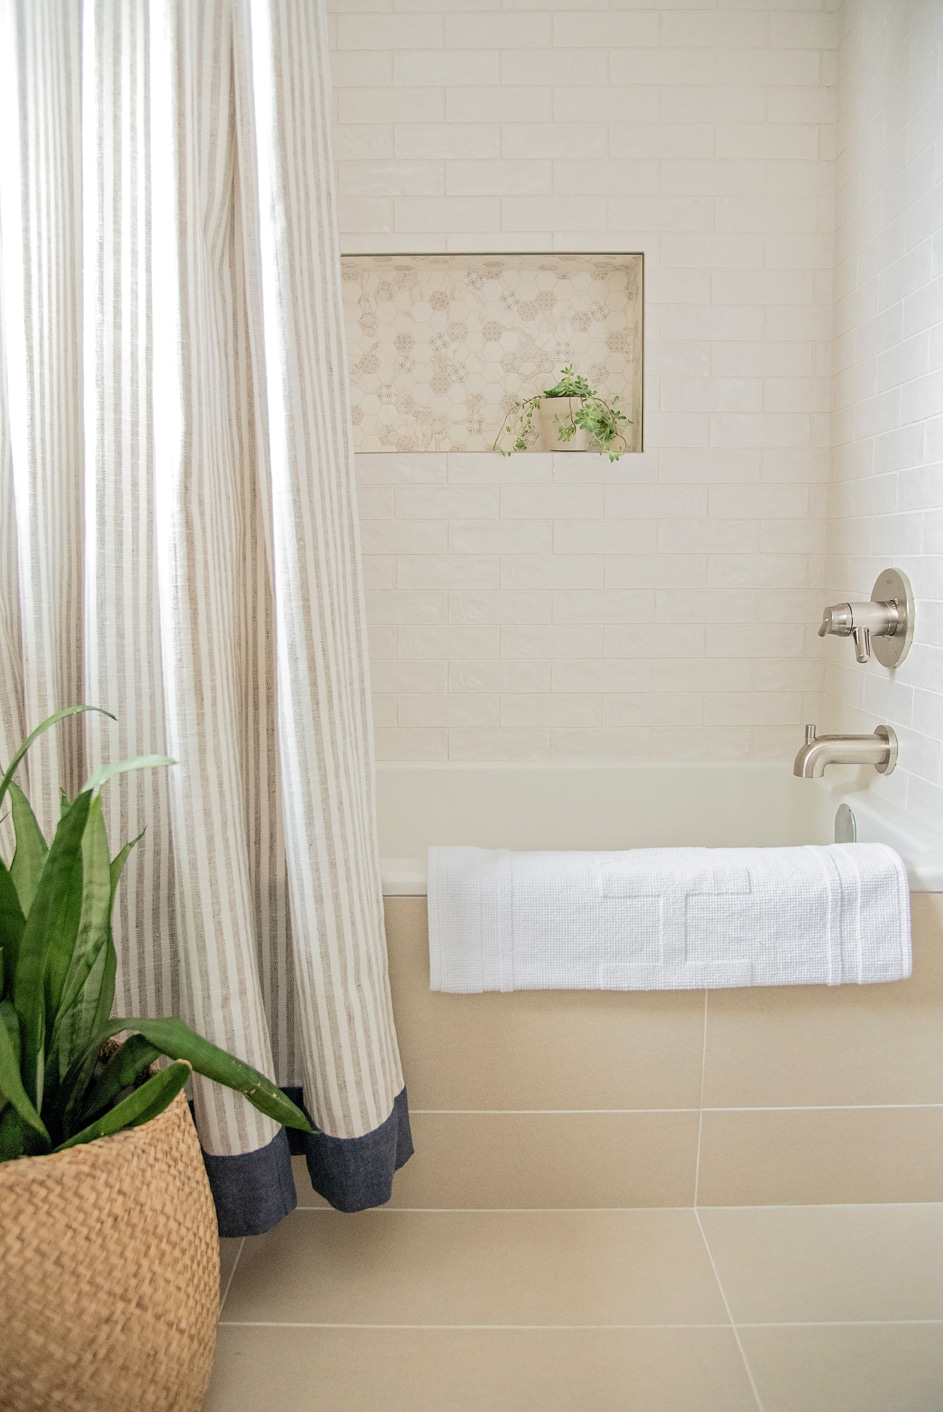 WEB LOW RES_WAILEA BATH REMODEL-143.jpg